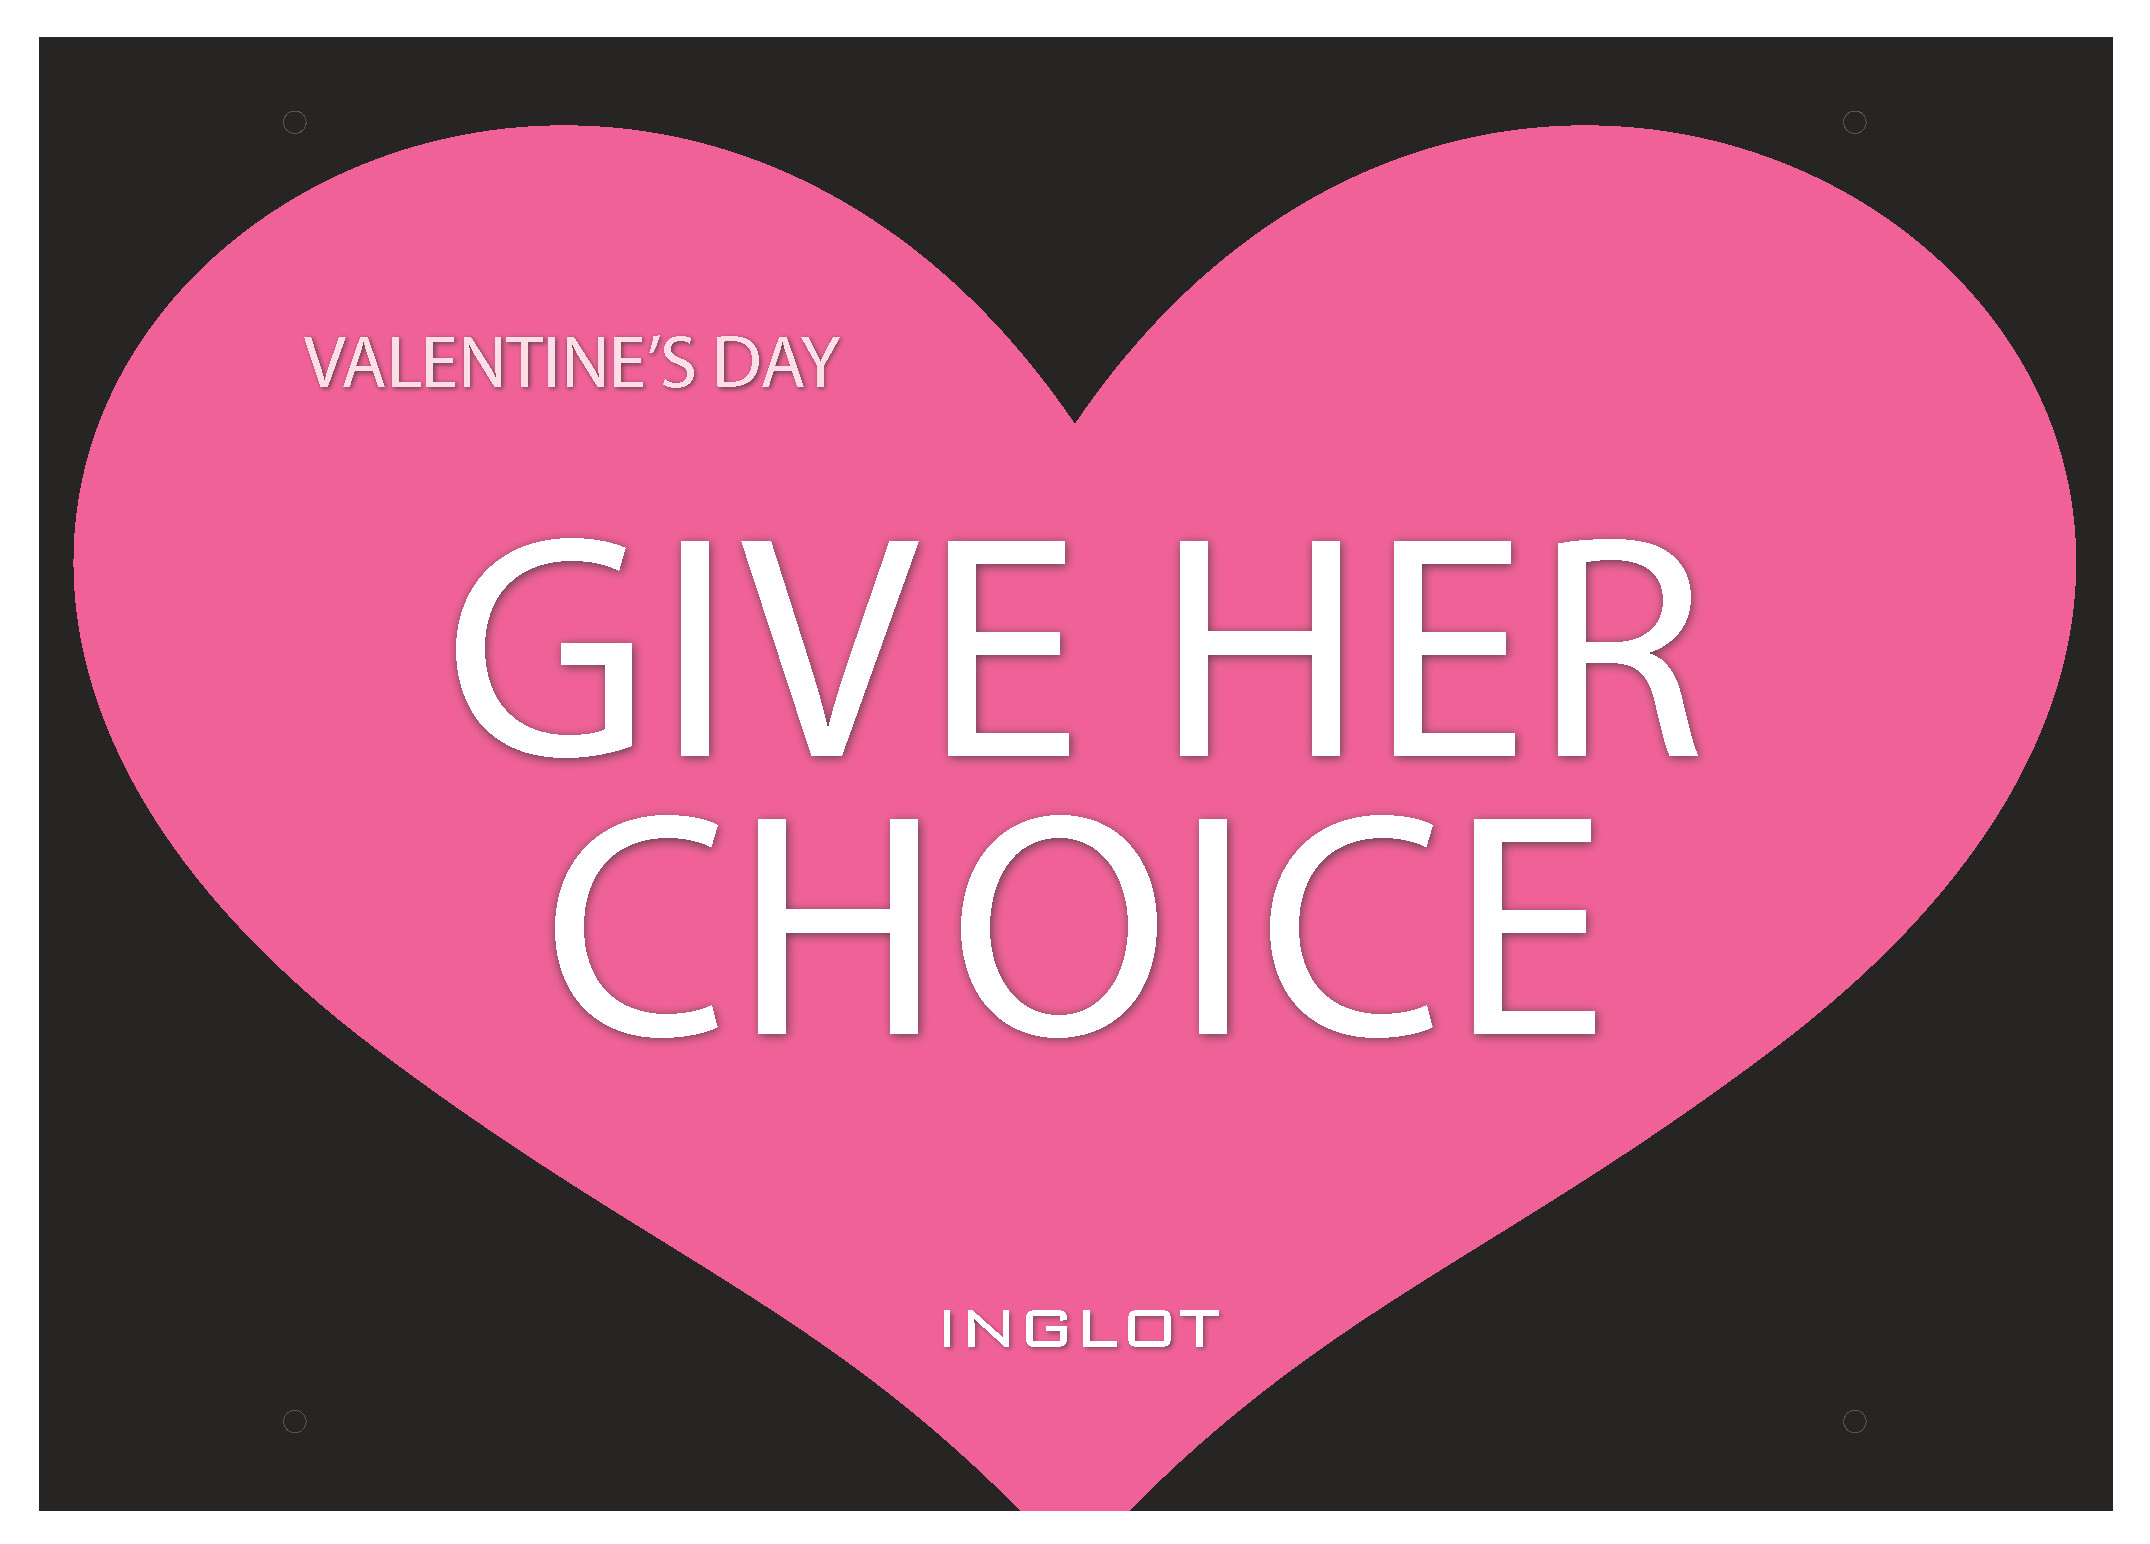 INGLOT Valentine's Day Promotion